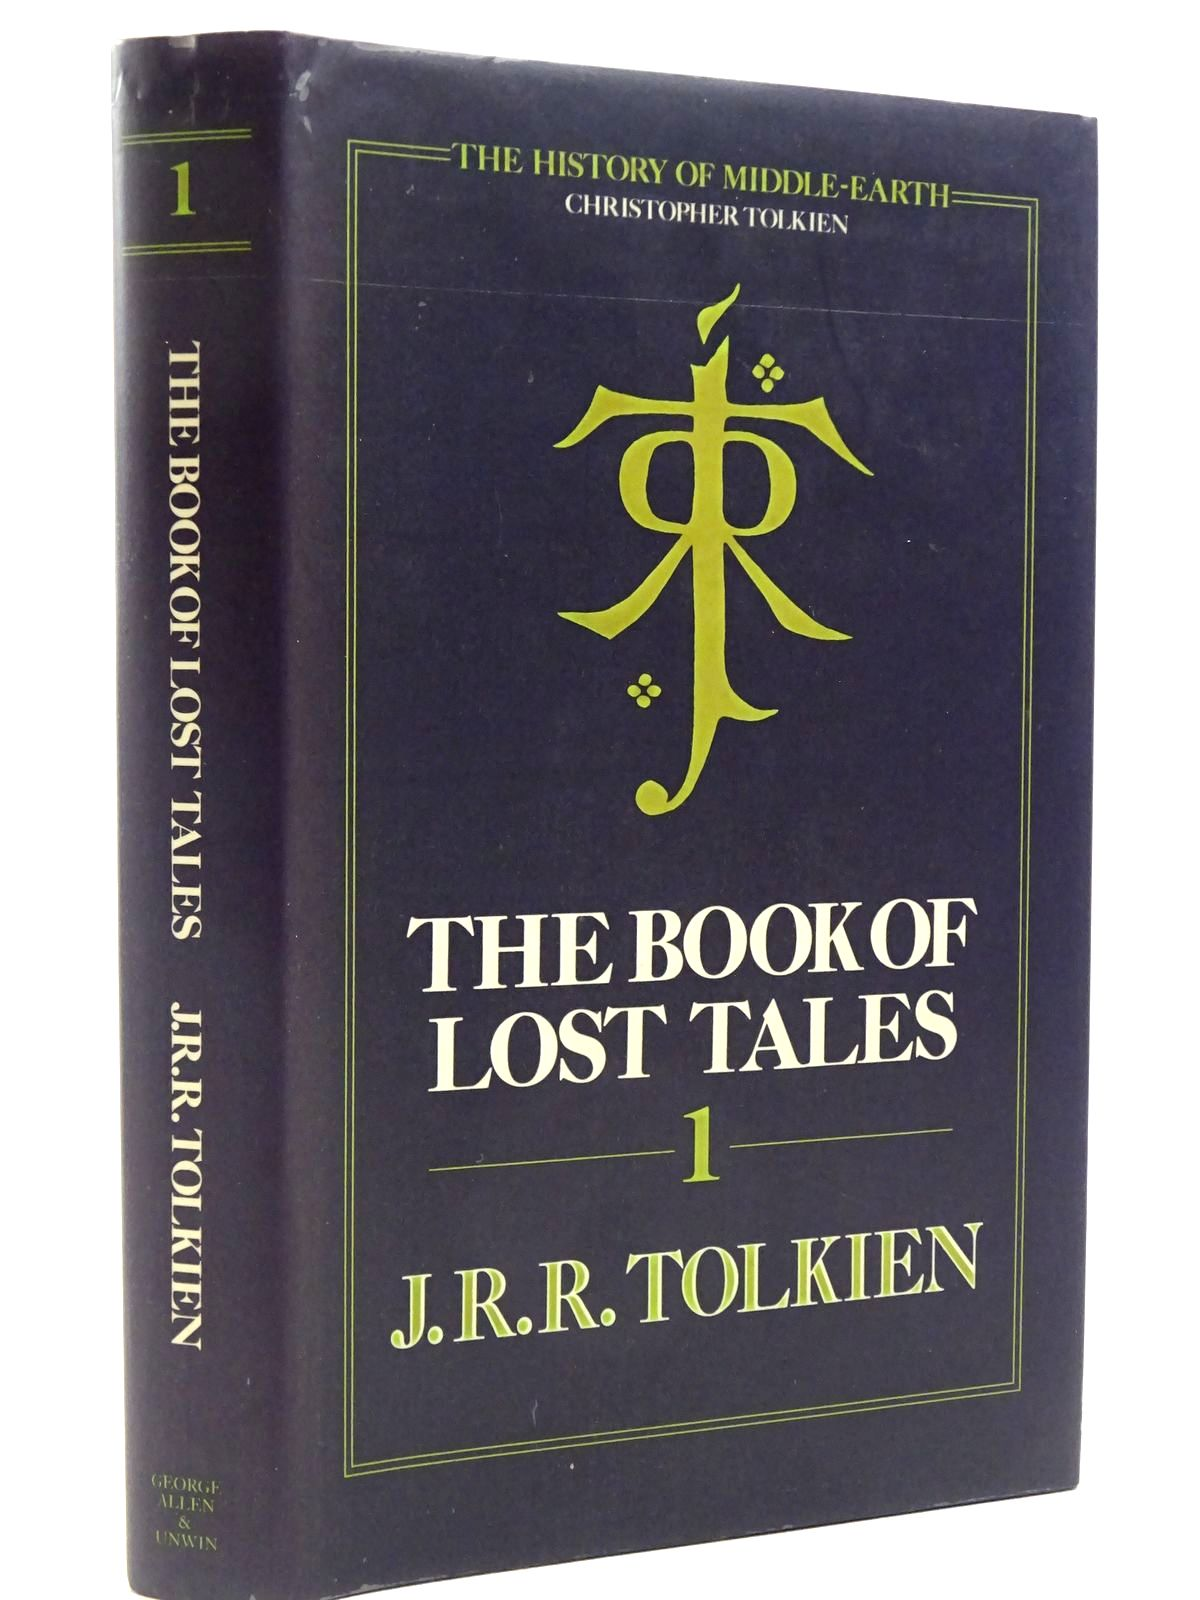 Photo of THE BOOK OF LOST TALES PART 1 written by Tolkien, J.R.R. published by George Allen & Unwin (STOCK CODE: 2129348)  for sale by Stella & Rose's Books